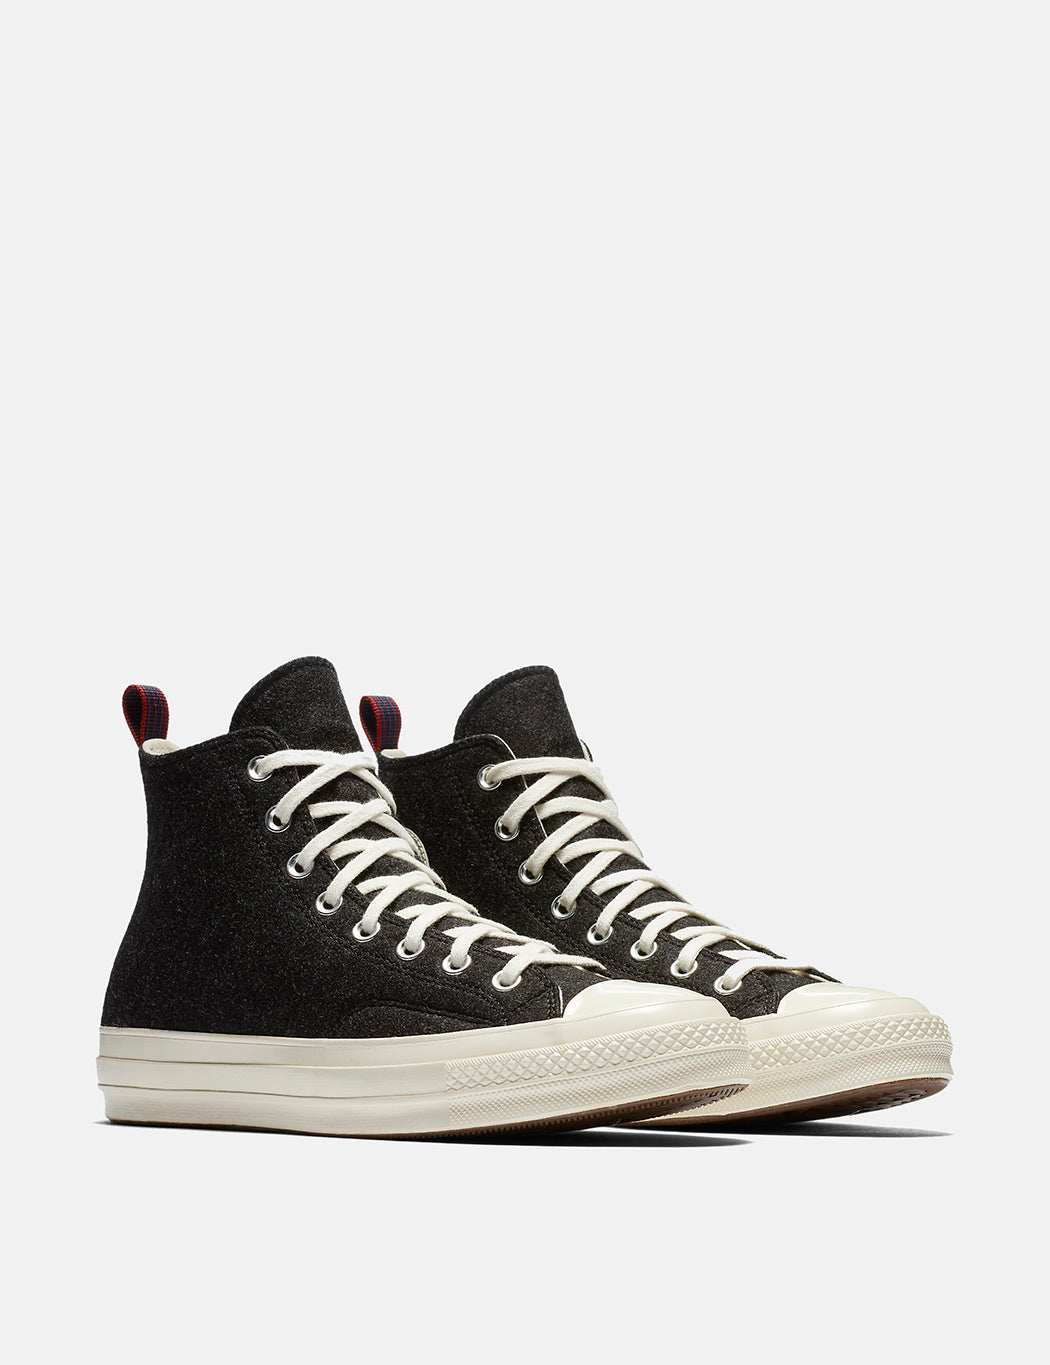 Converse Chuck Taylor All Star 70 Suede Zip Hi Black/Egret Size US11/UK11